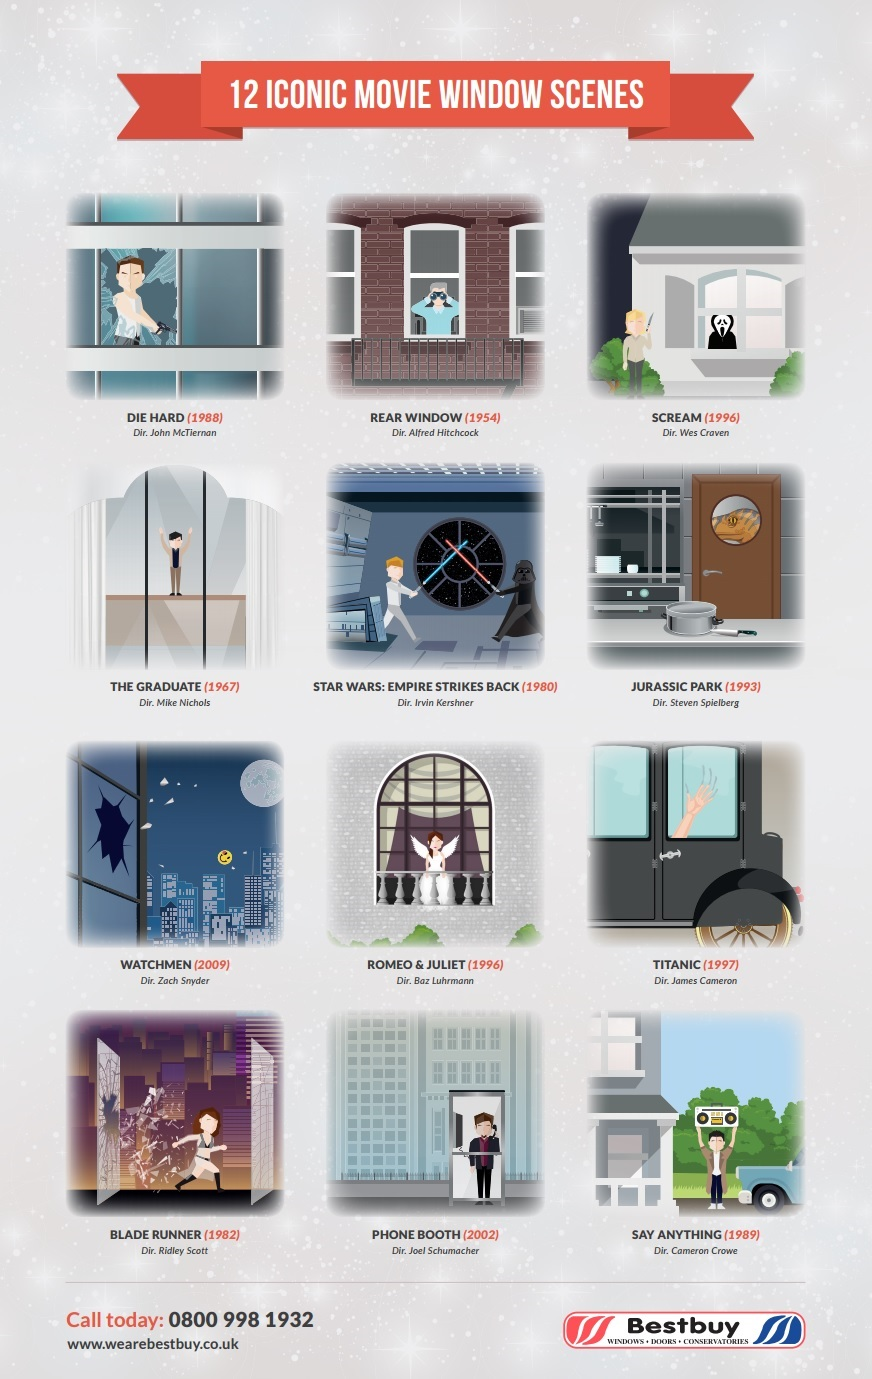 iconic movie window scenes infographic